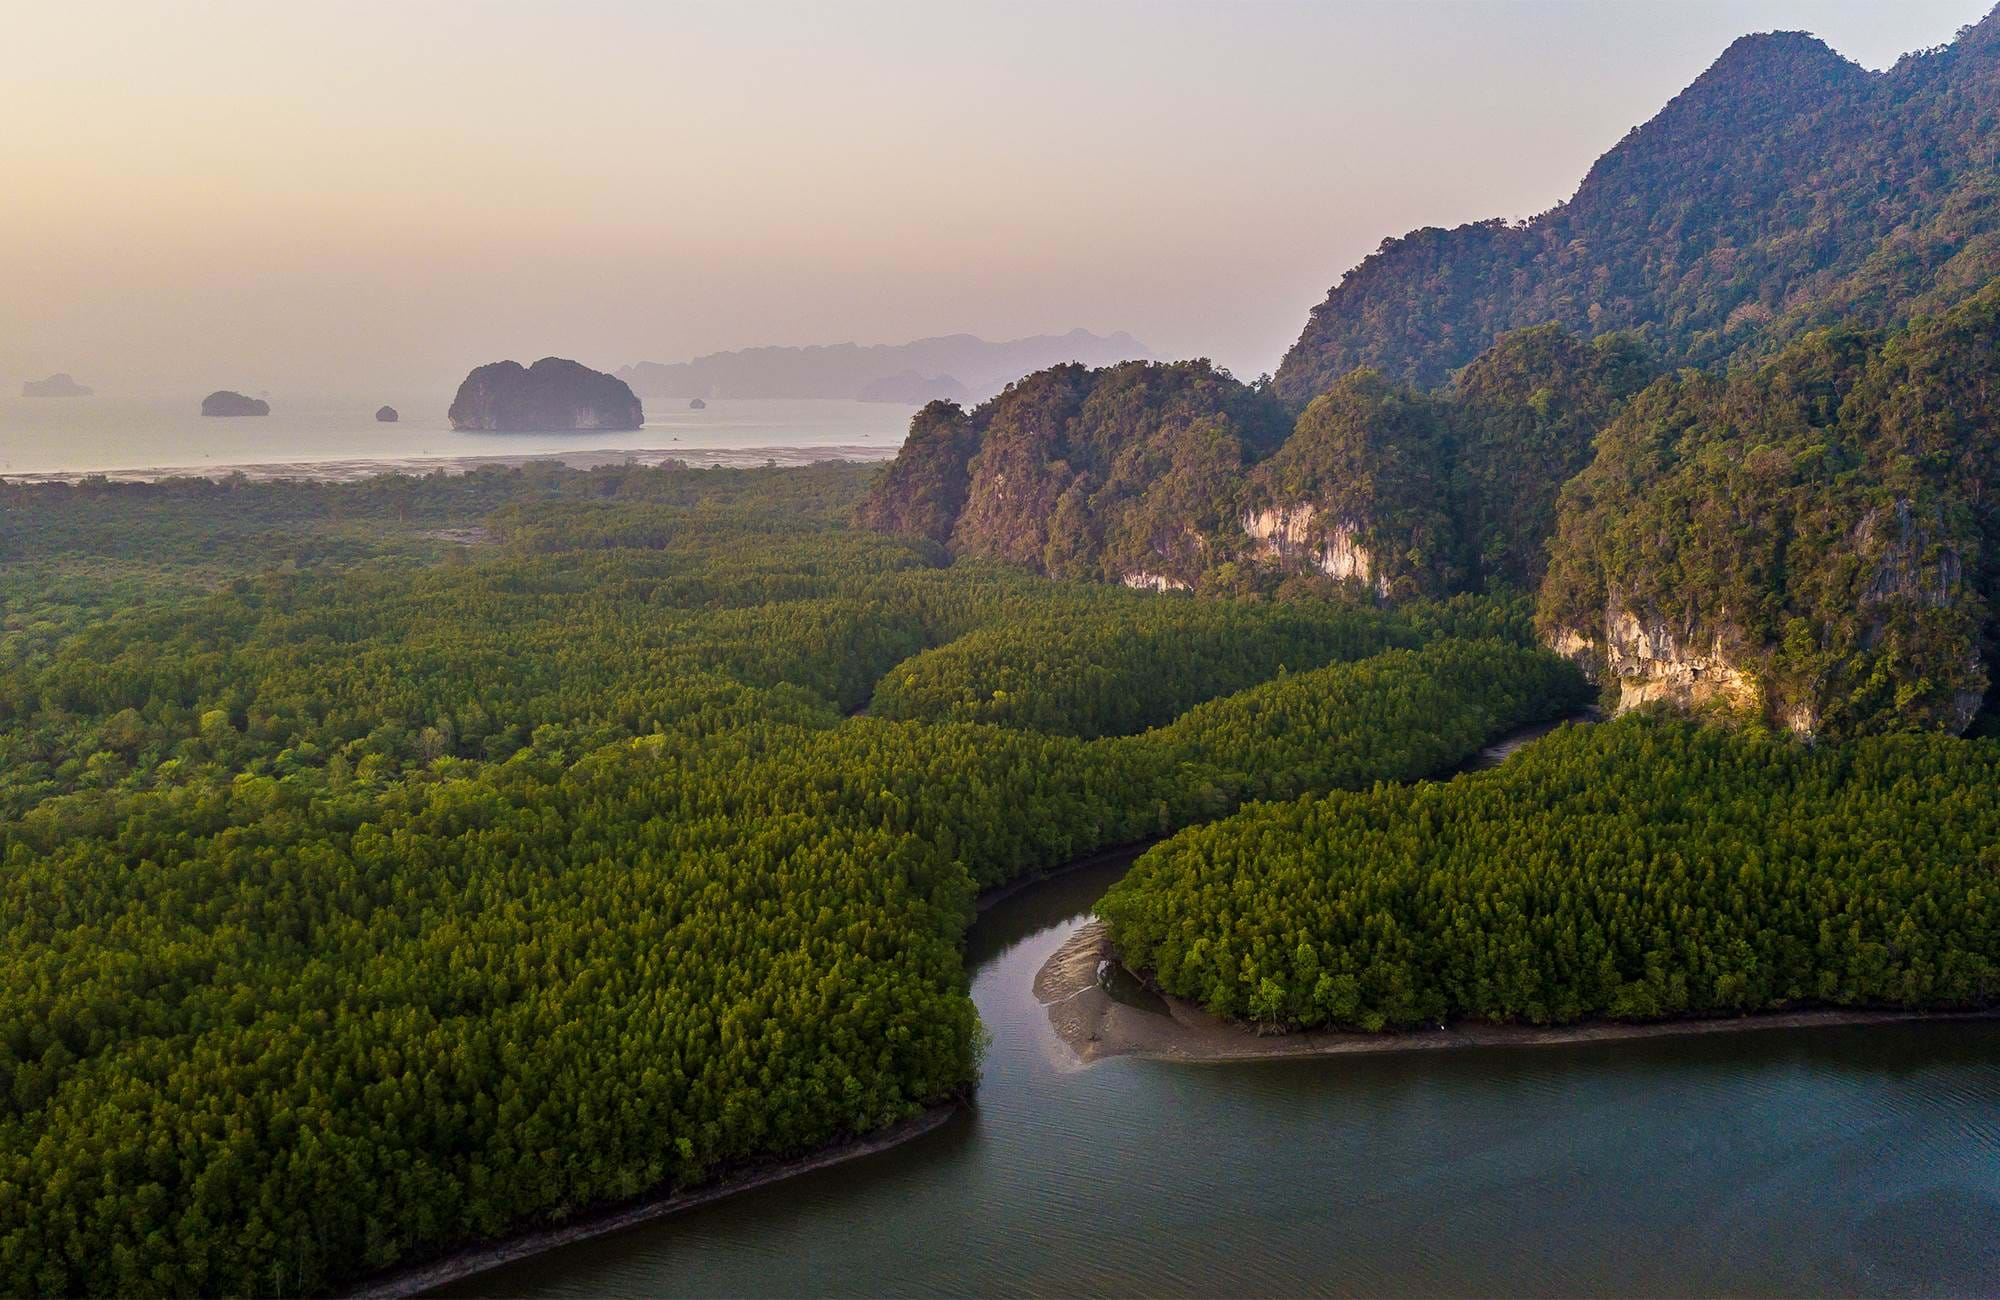 krabi-thailand-river-mangrove-forest-mountain-sunset-cover